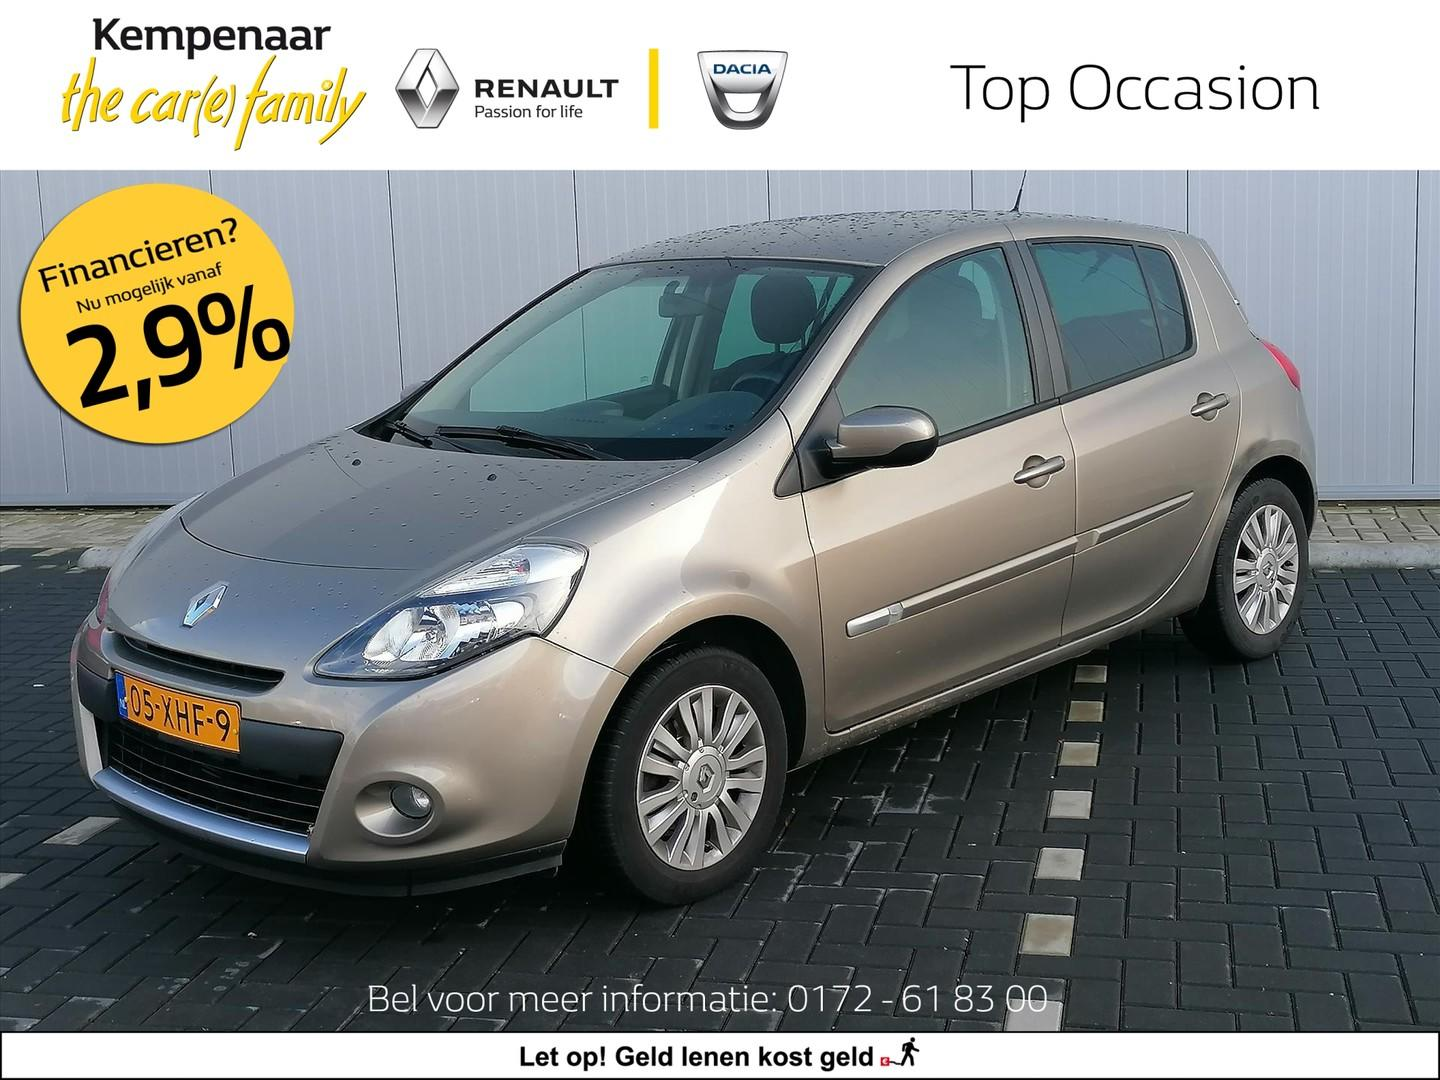 Renault Clio 1.2 tce 100 5-drs collection